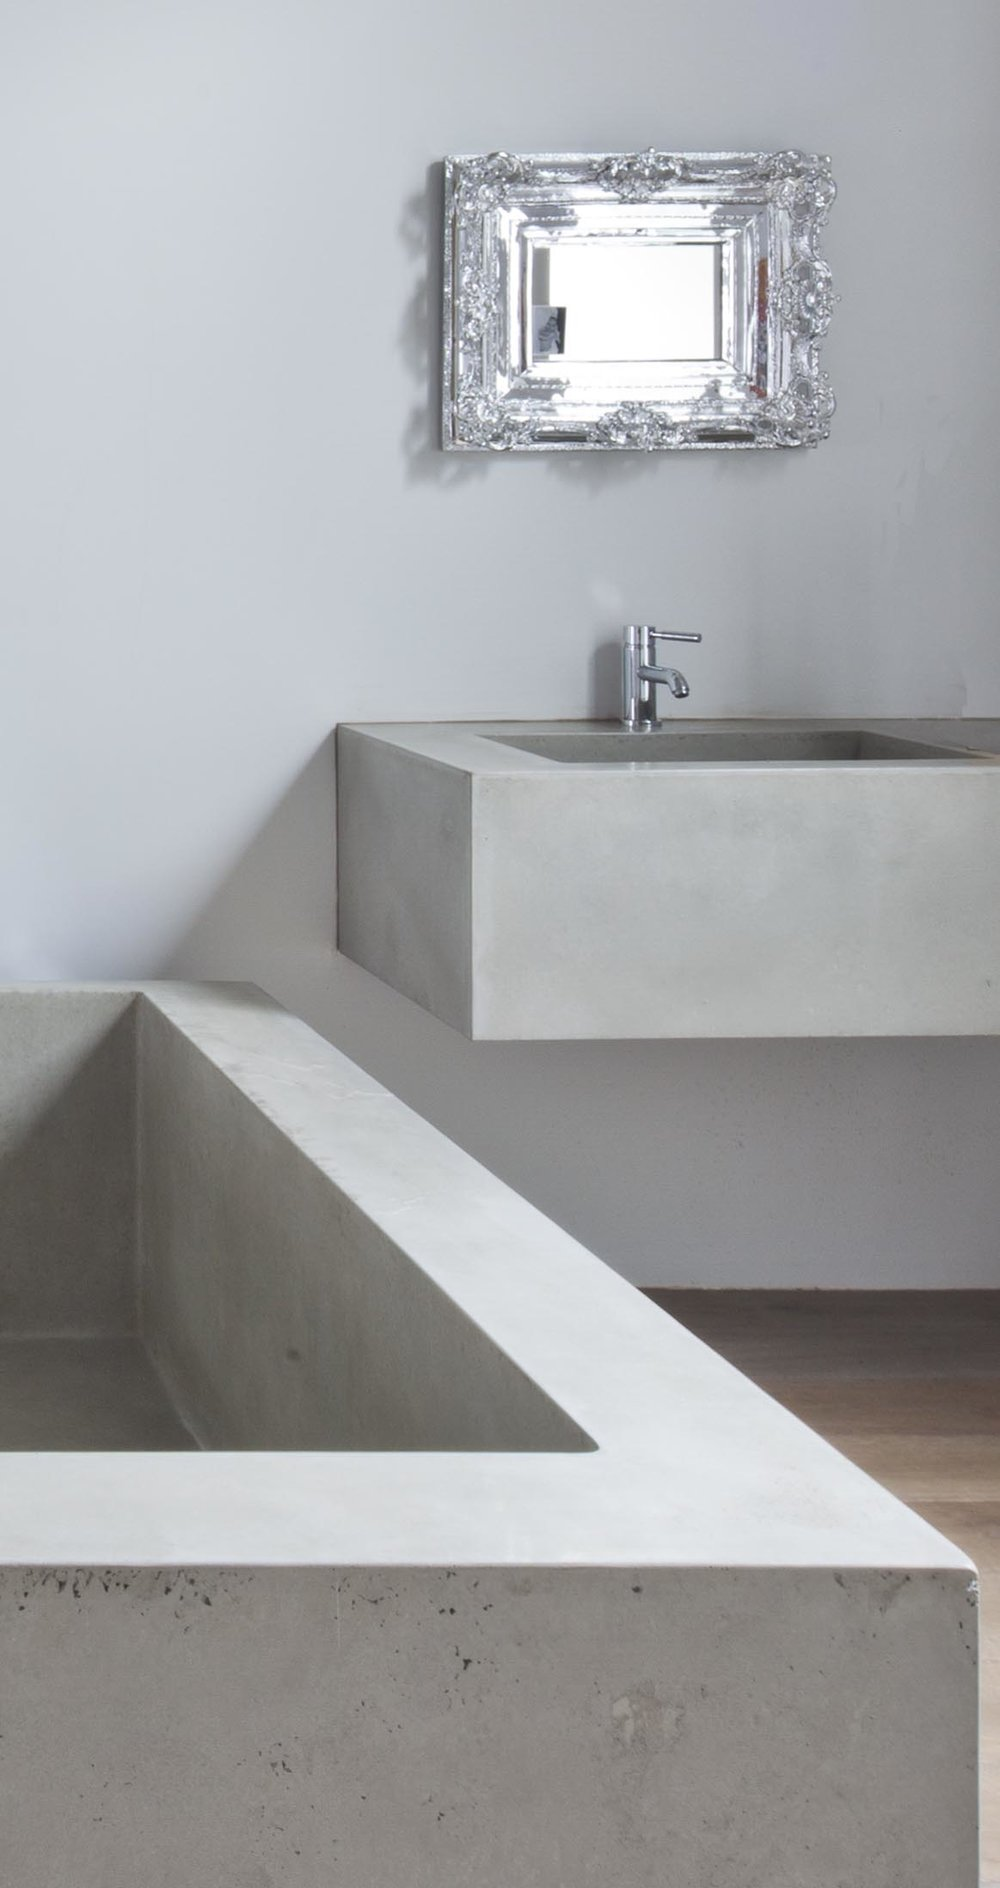 gh3-Annex-House-bathtub detail.jpg